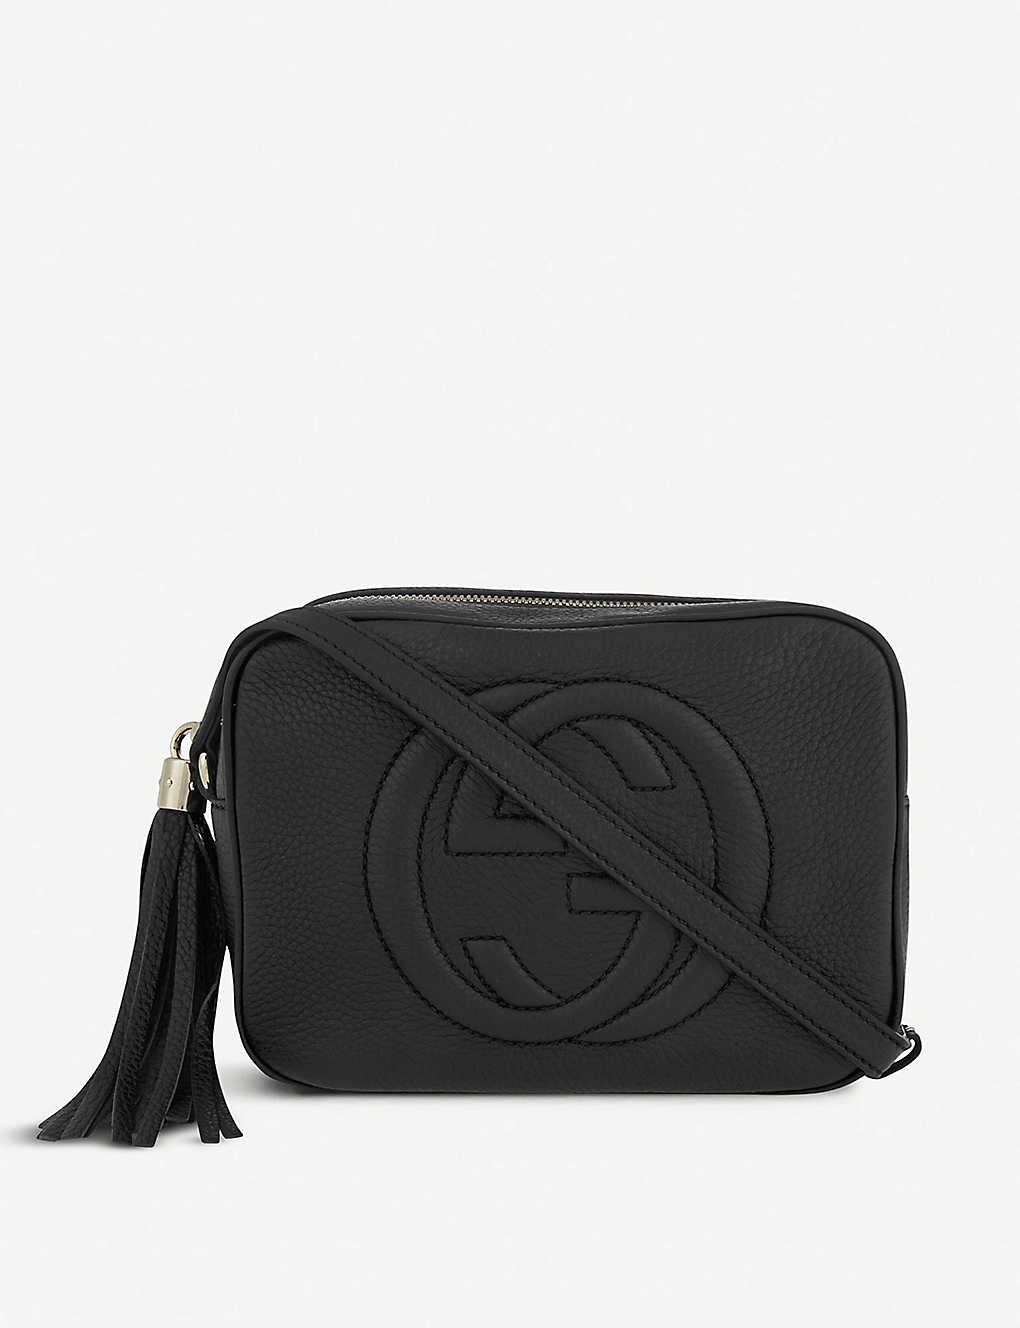 969cca81c GUCCI - Soho leather cross-body bag | Selfridges.com